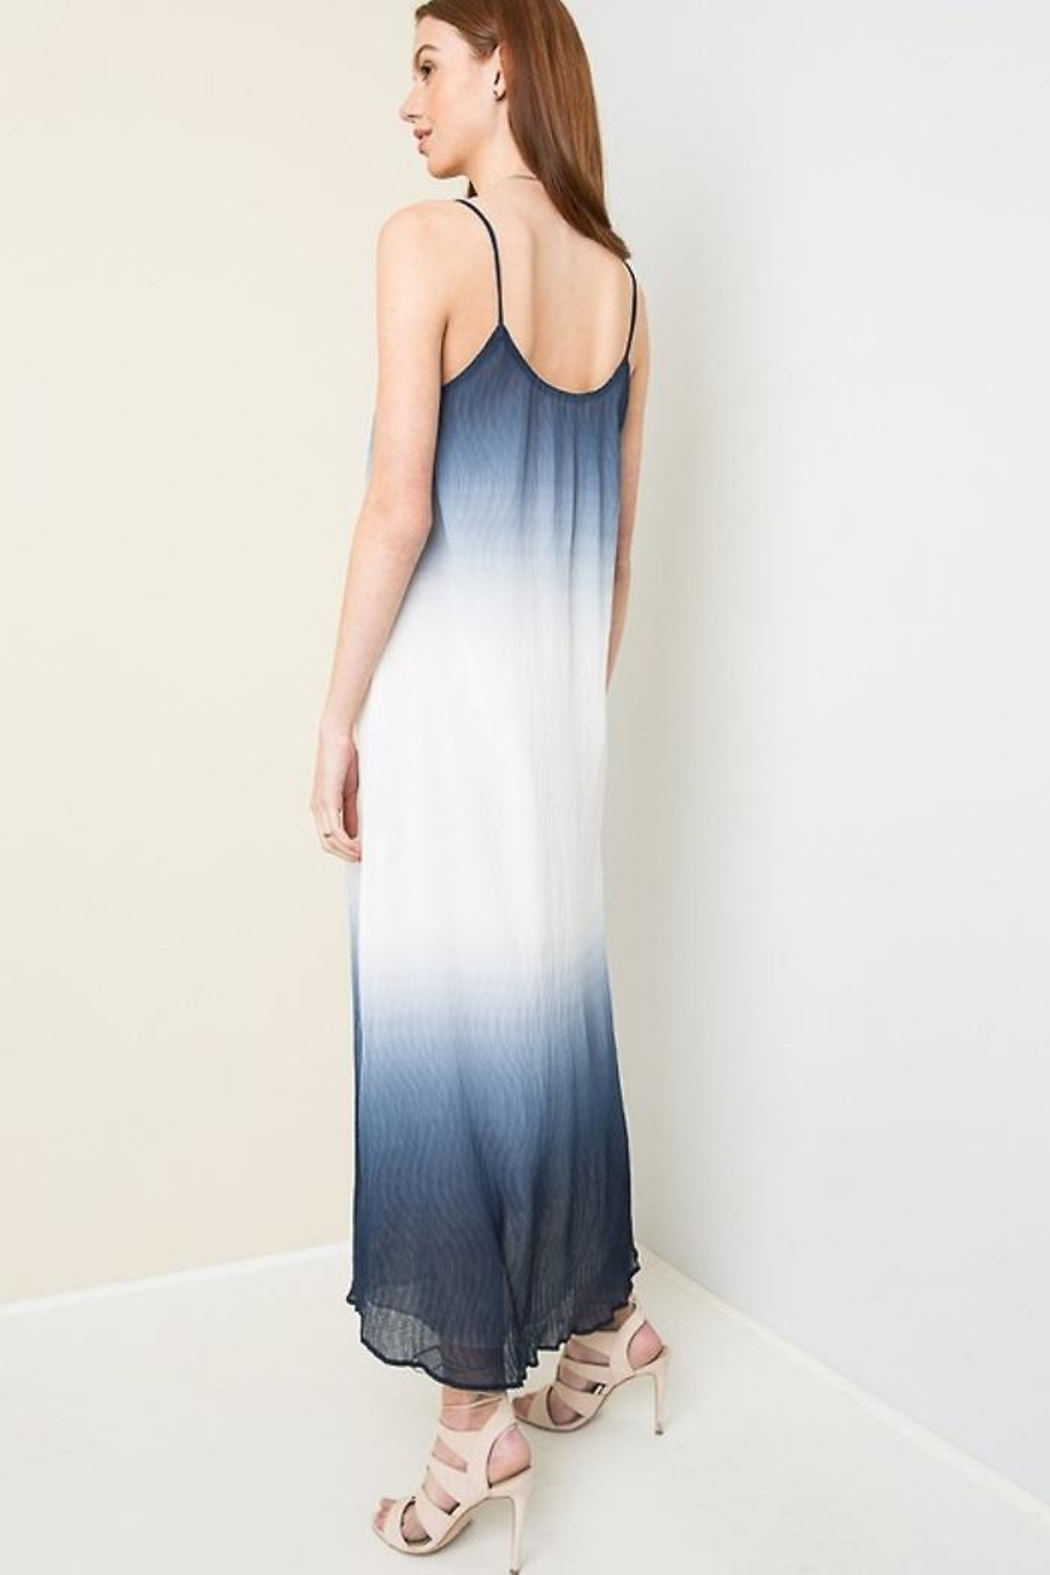 People Outfitter Dip Die Maxi-Dress - Back Cropped Image